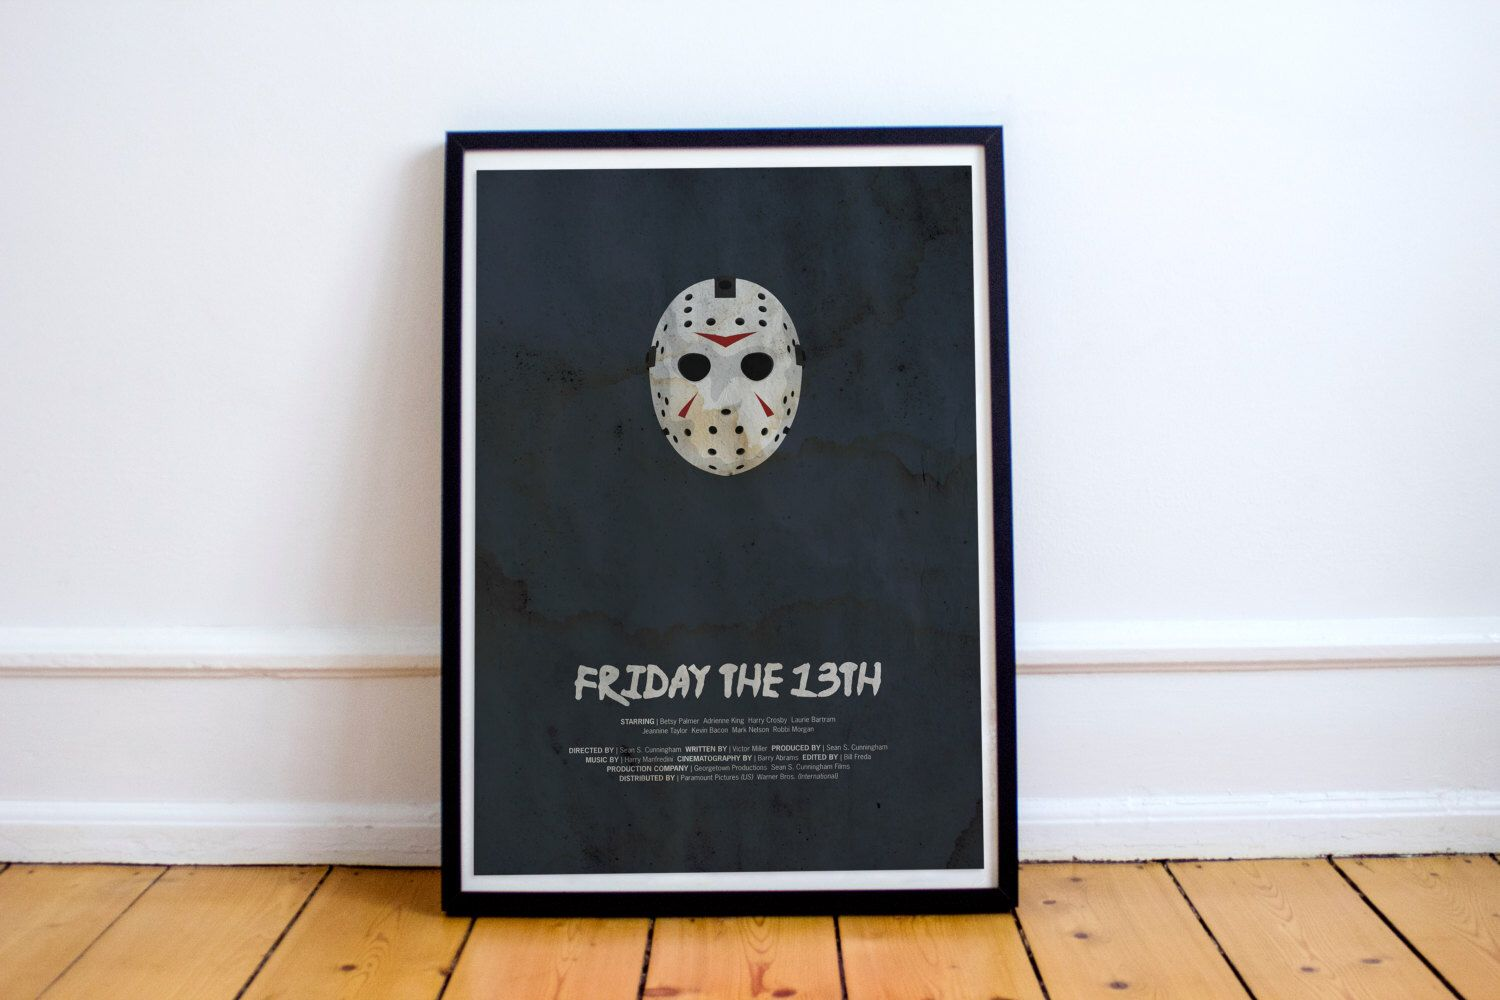 Camp Has Been Terminated // Friday the 13th - Alternate Horror Movie Poster // Water-stain-textured vintage print with killer hockey mask by TheGeekerie on Etsy https://www.etsy.com/listing/470361126/camp-has-been-terminated-friday-the-13th